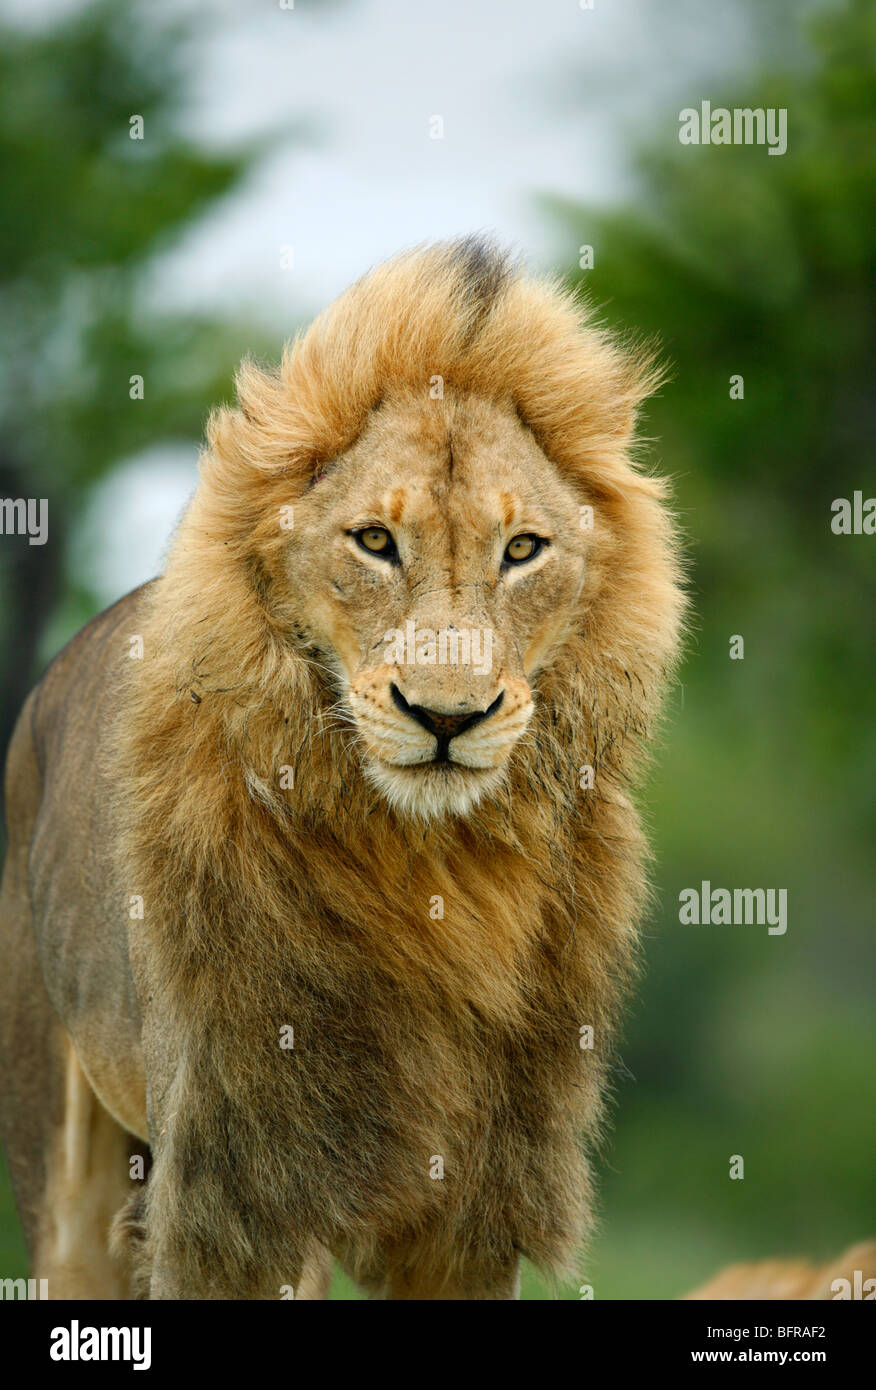 Portrait of a male lion with substantial mane standing up and stretching - Stock Image